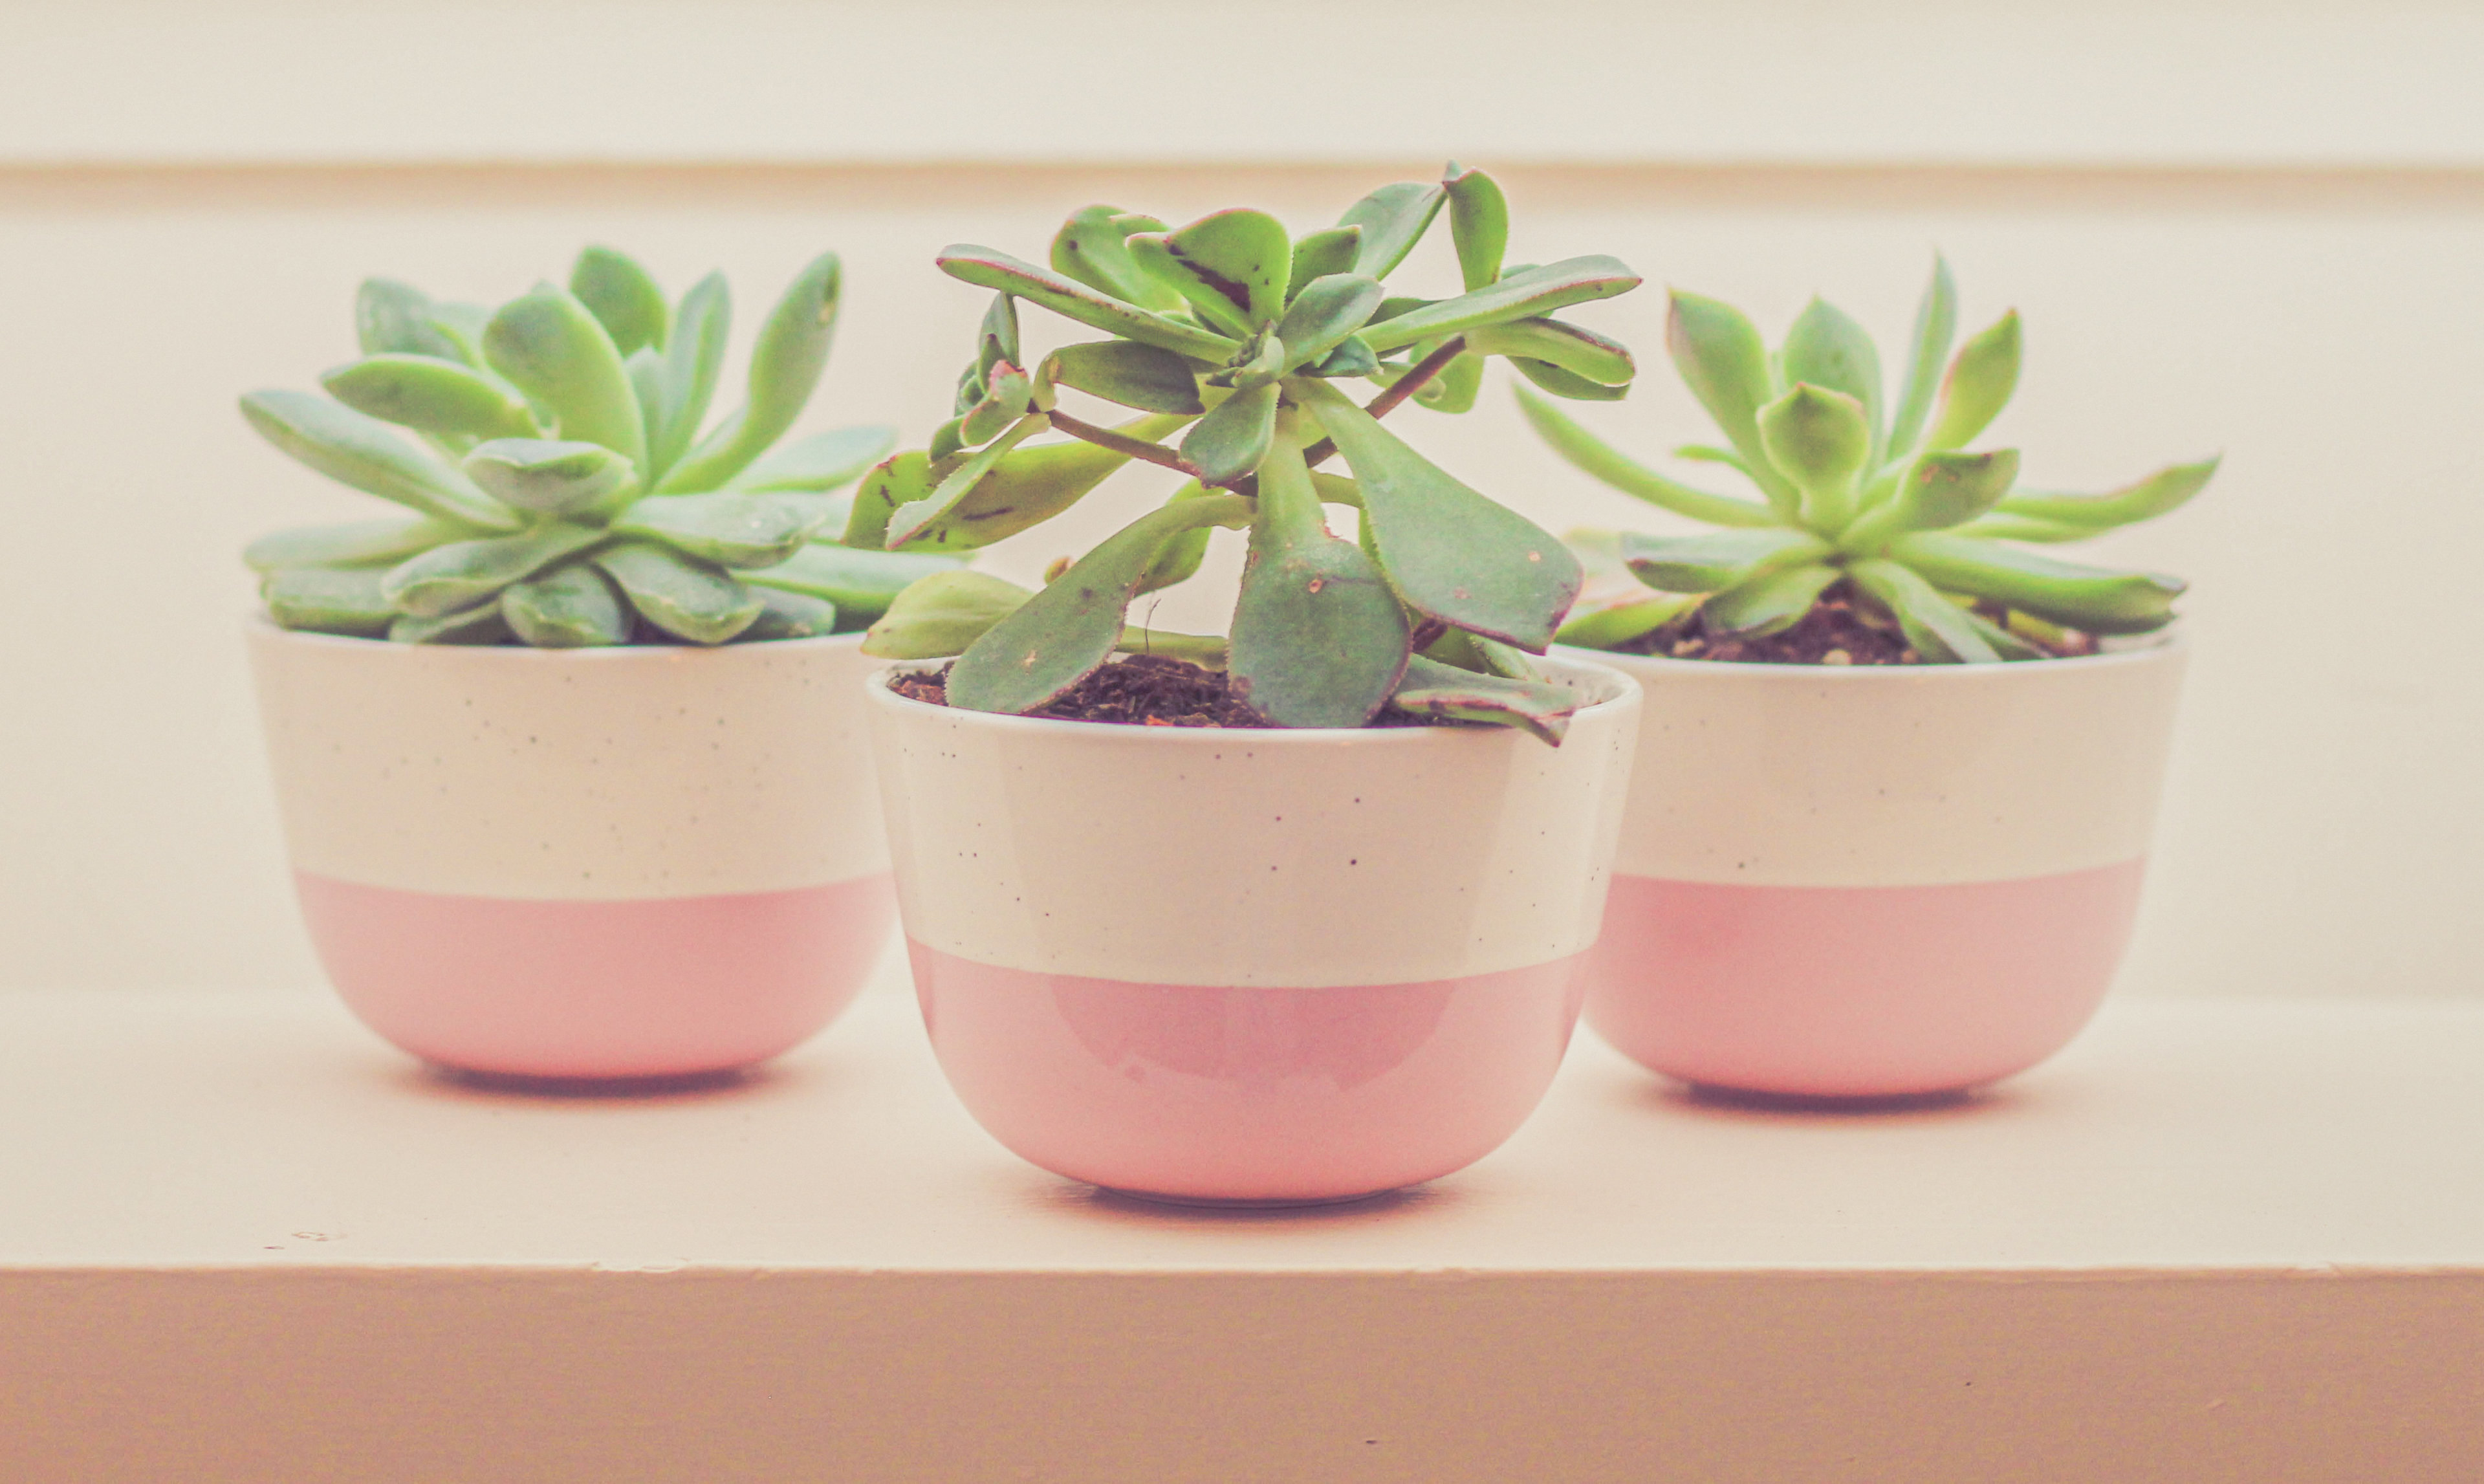 Three small plants in pink and white pots.